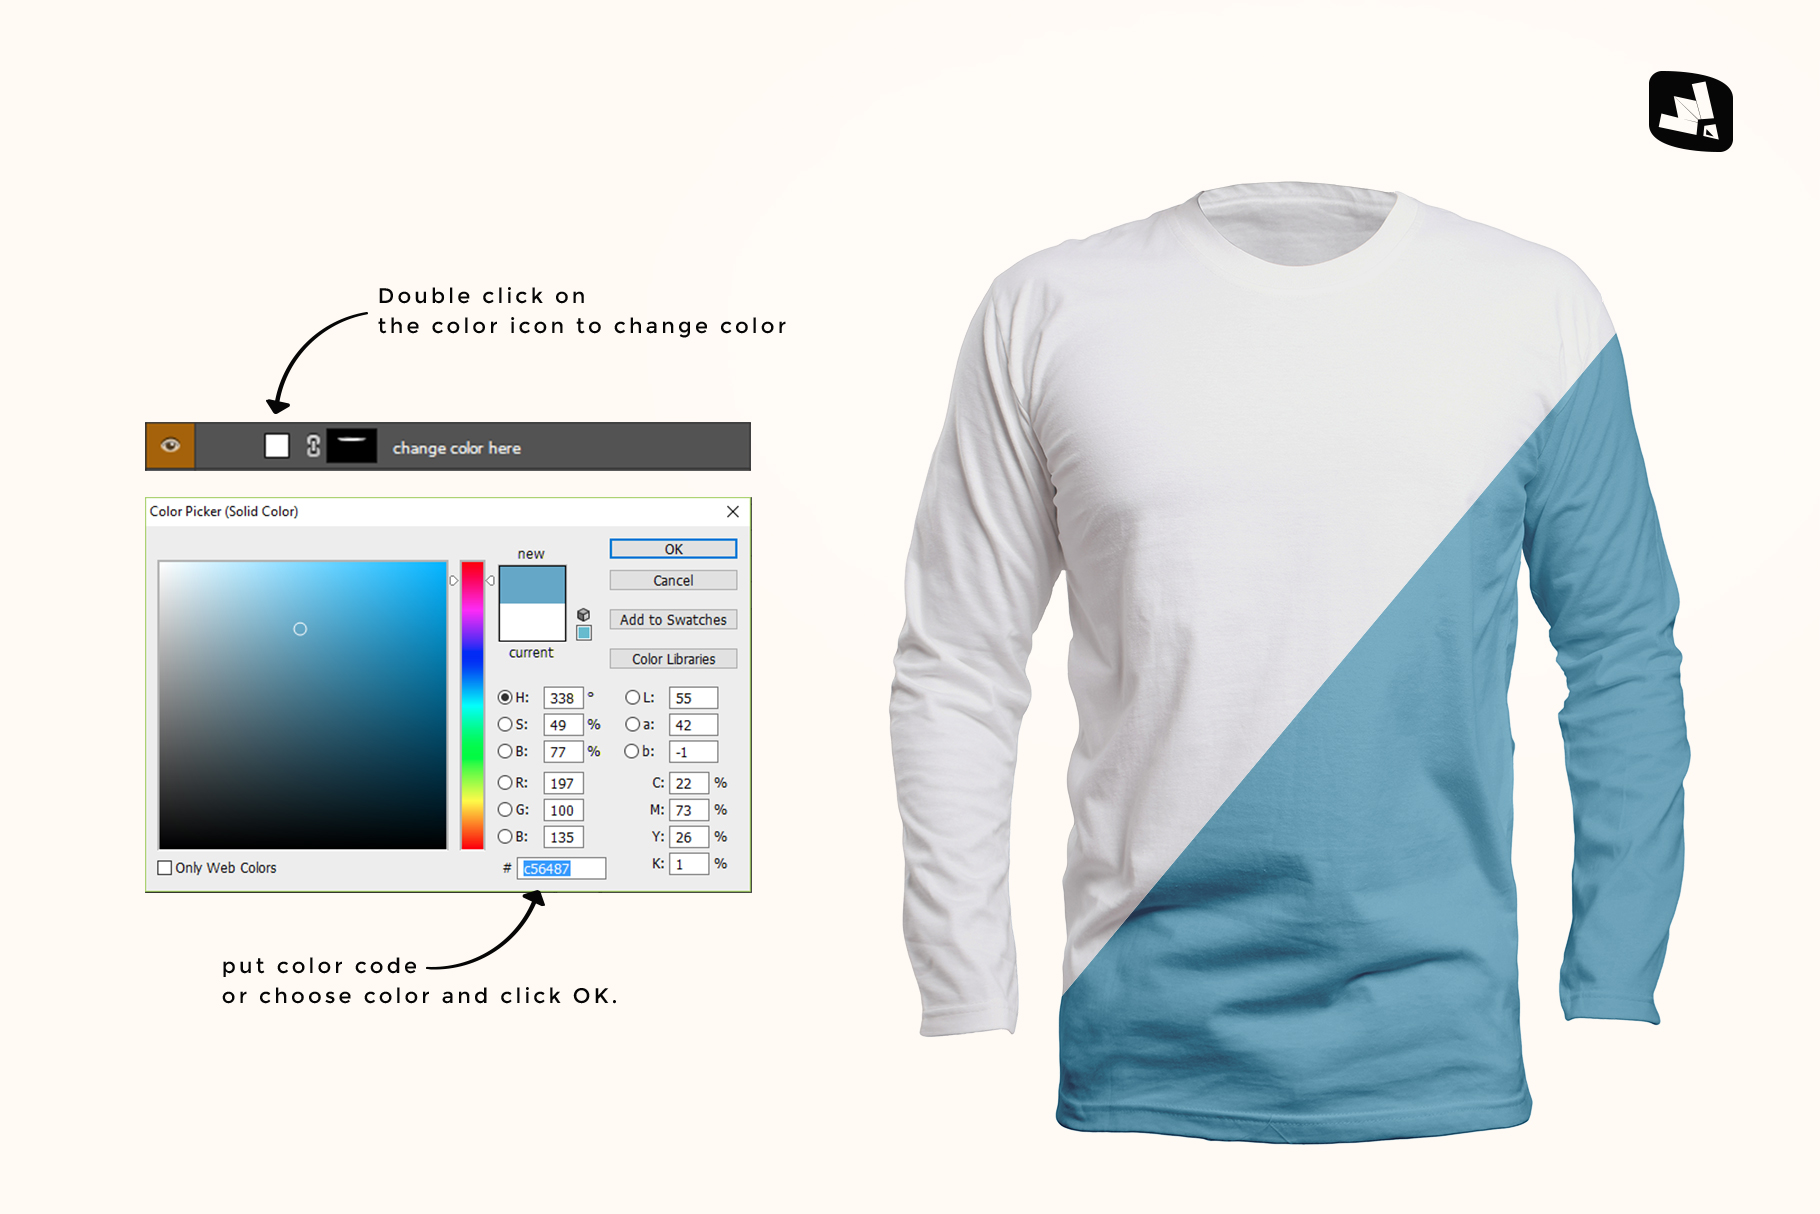 how to change color of the long sleeve round collar tshirt mockup